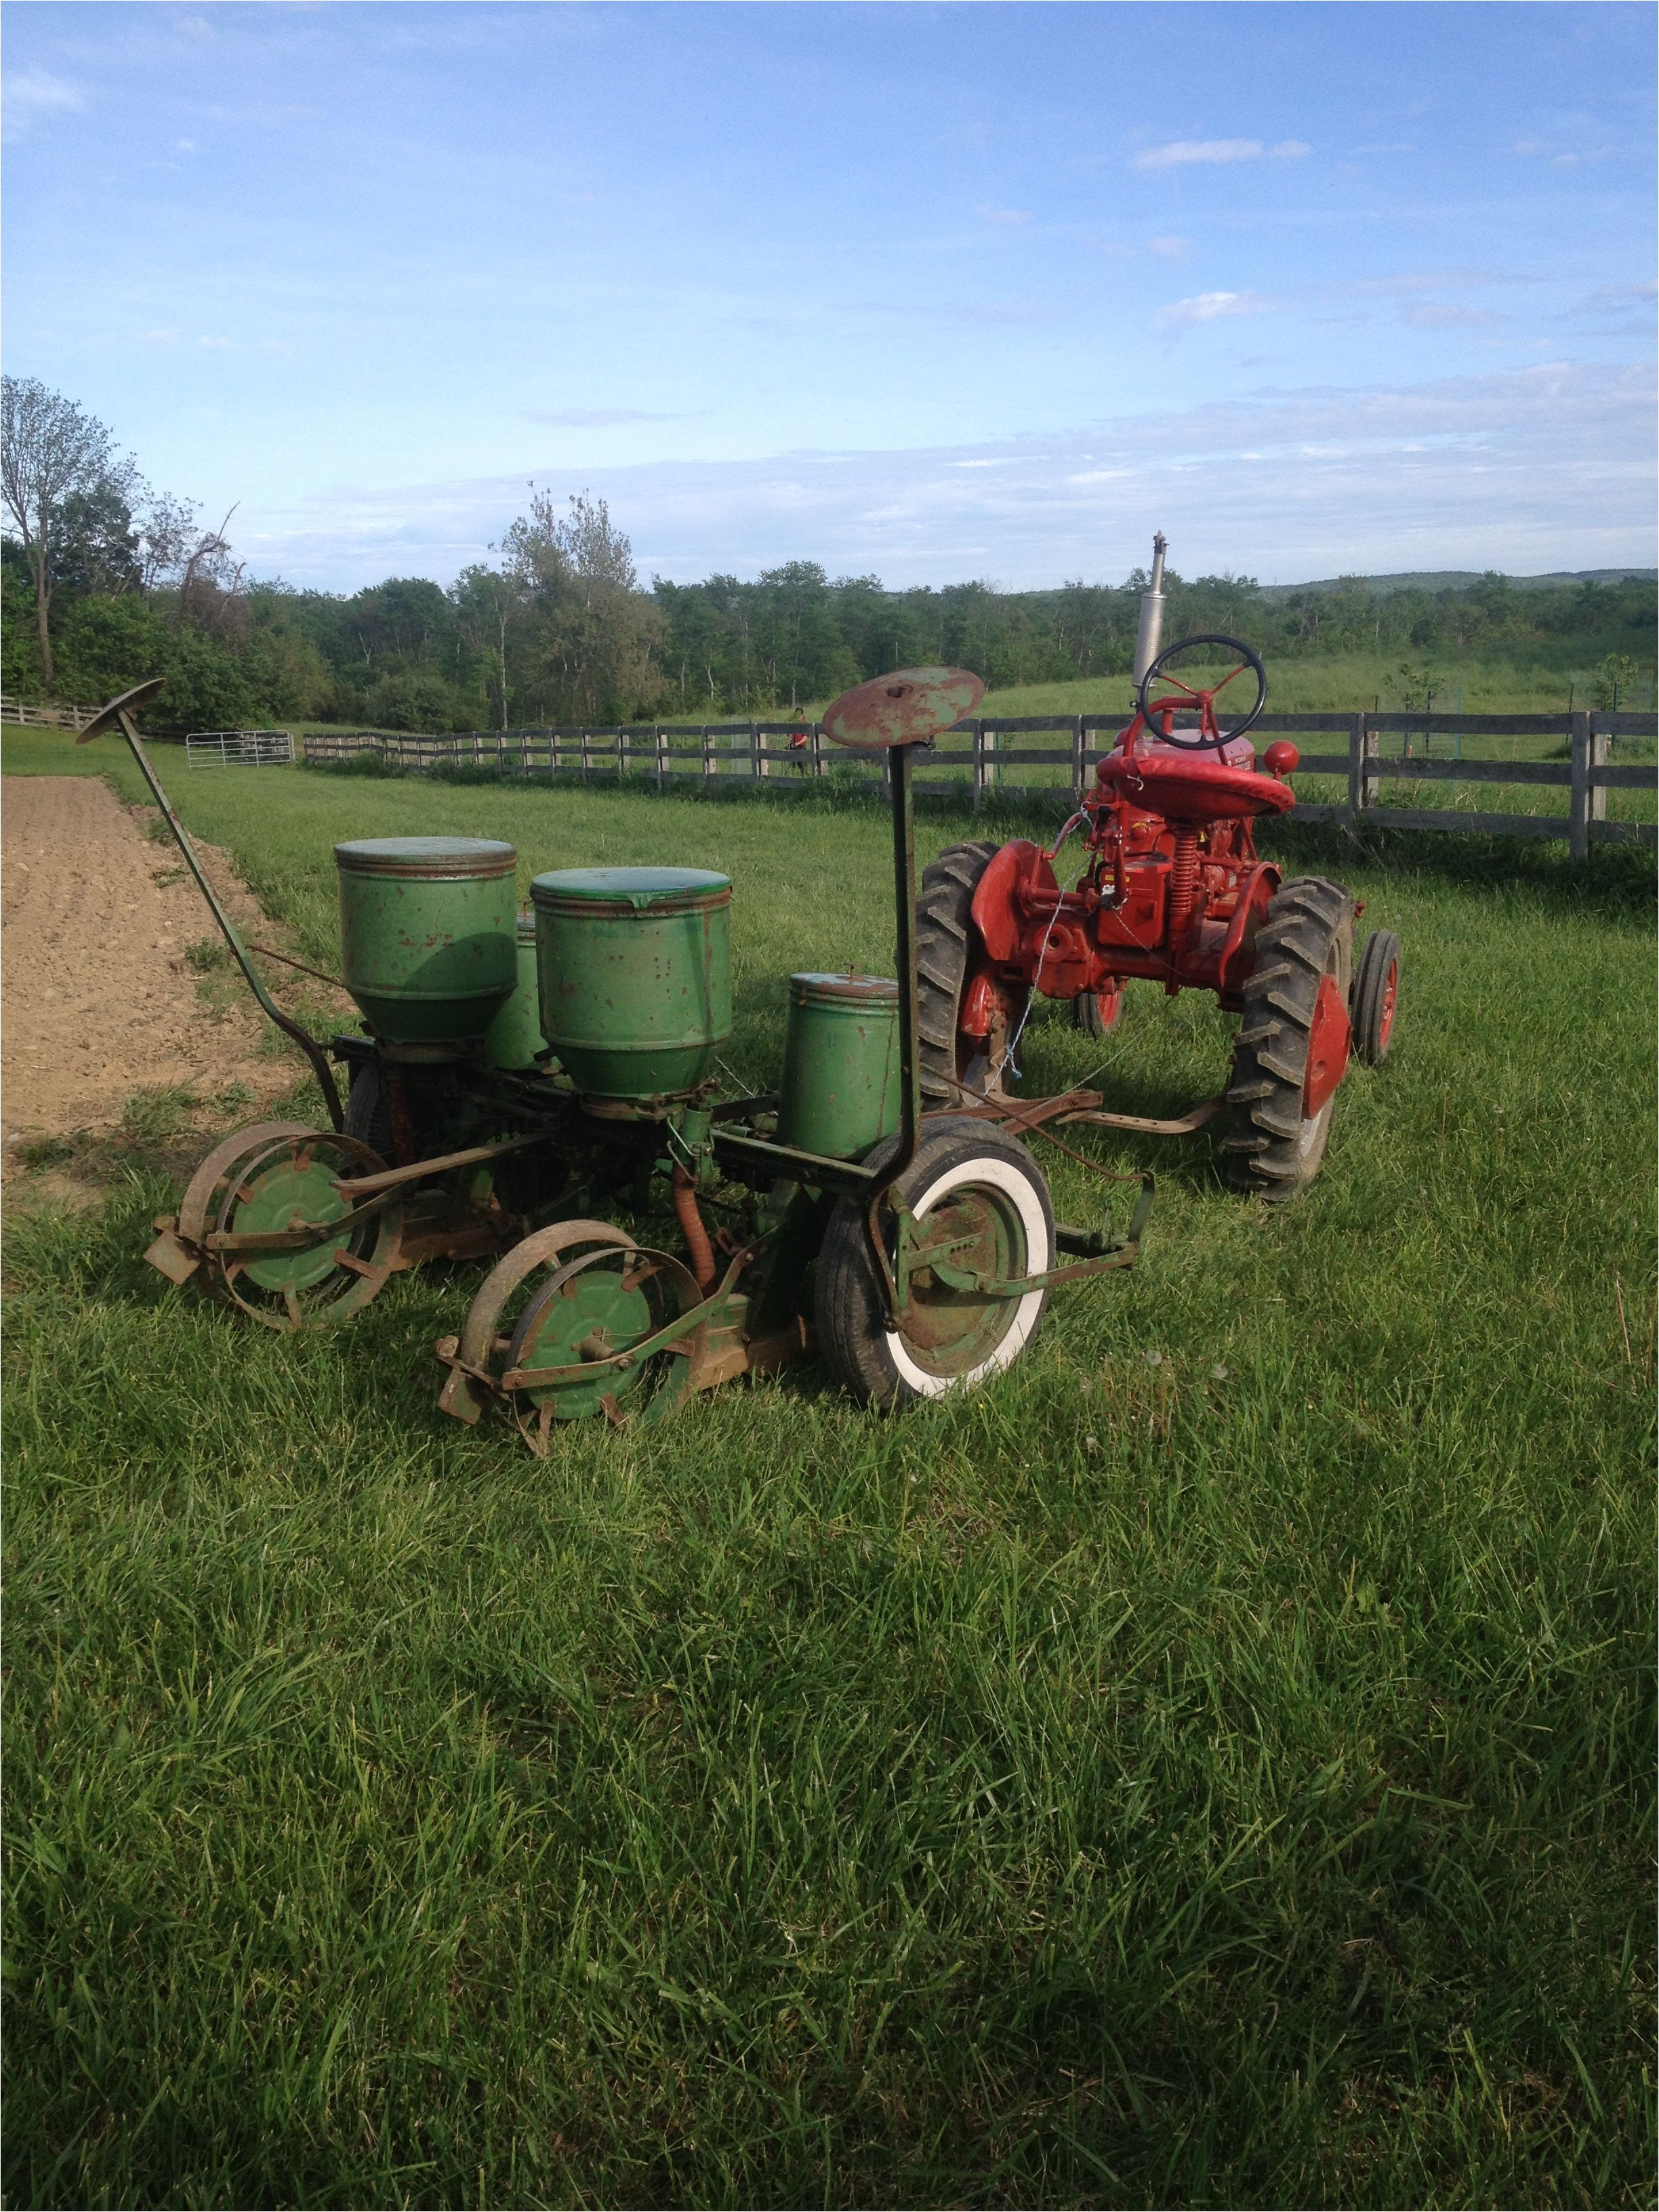 Tractorshed Com for Sale Jd 290 Planter and 1953 Farmall Cub Old Iron Pinterest